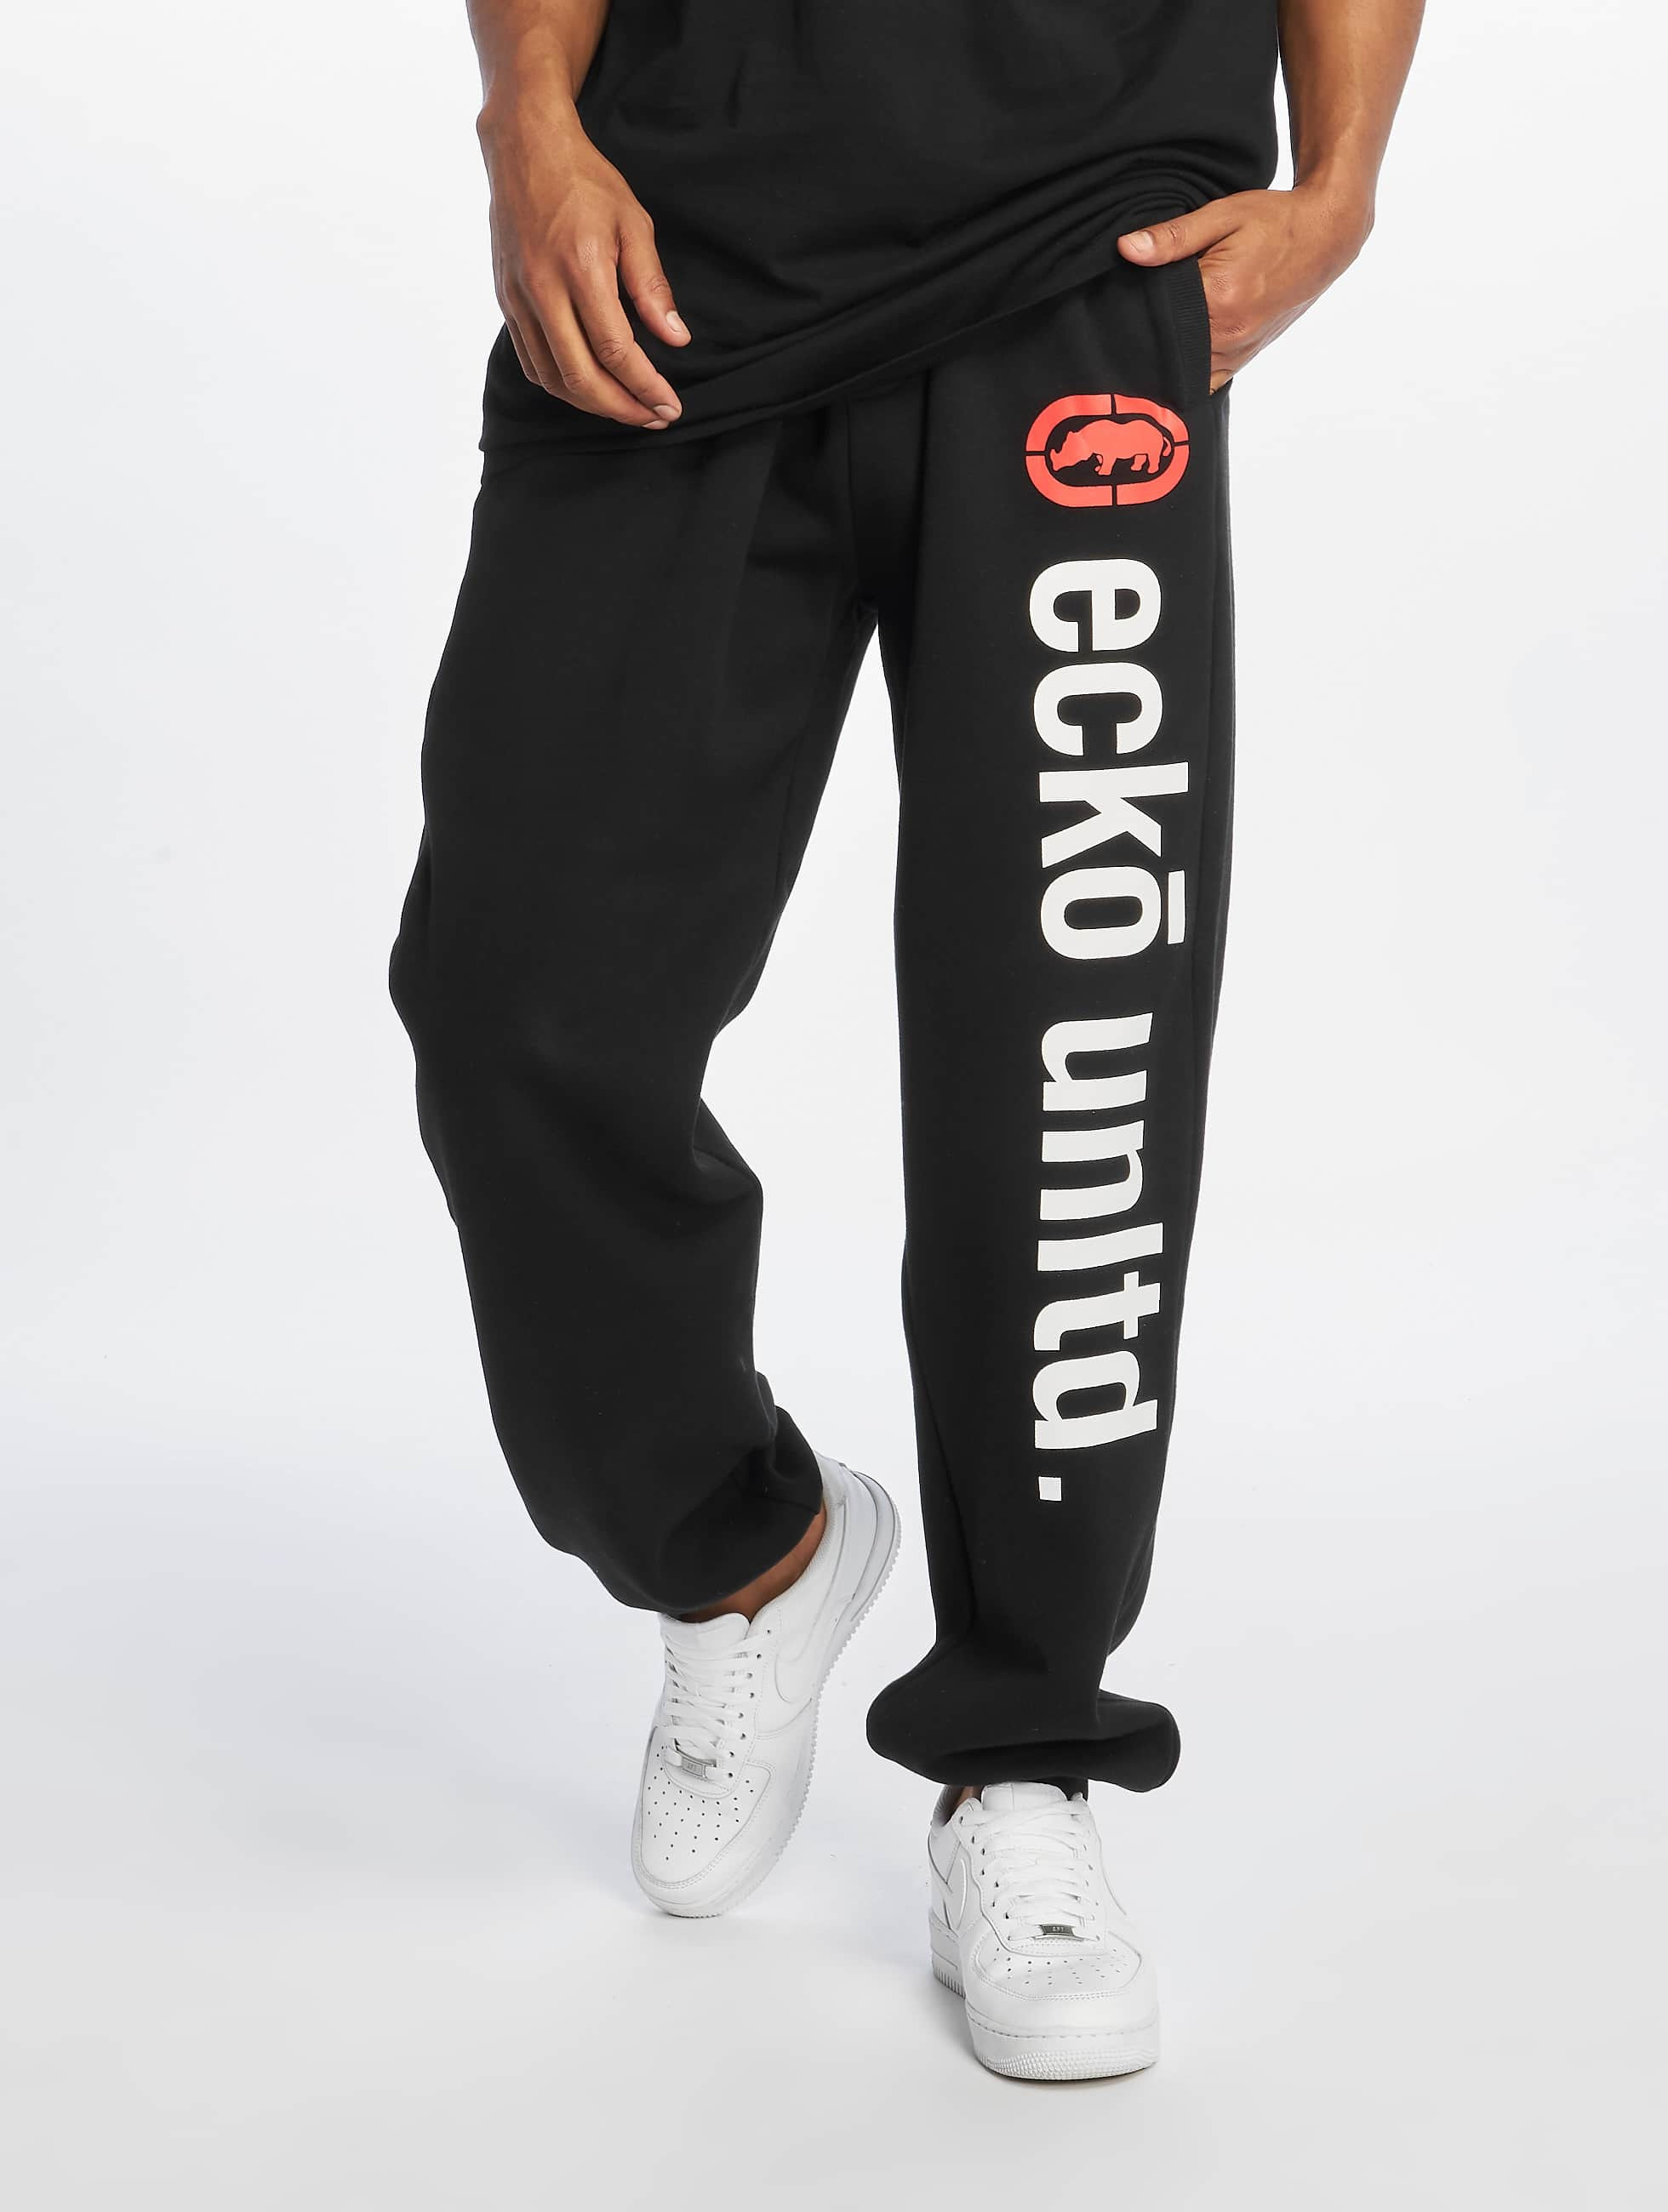 Ecko Unltd. Joggingbukser 2Face sort